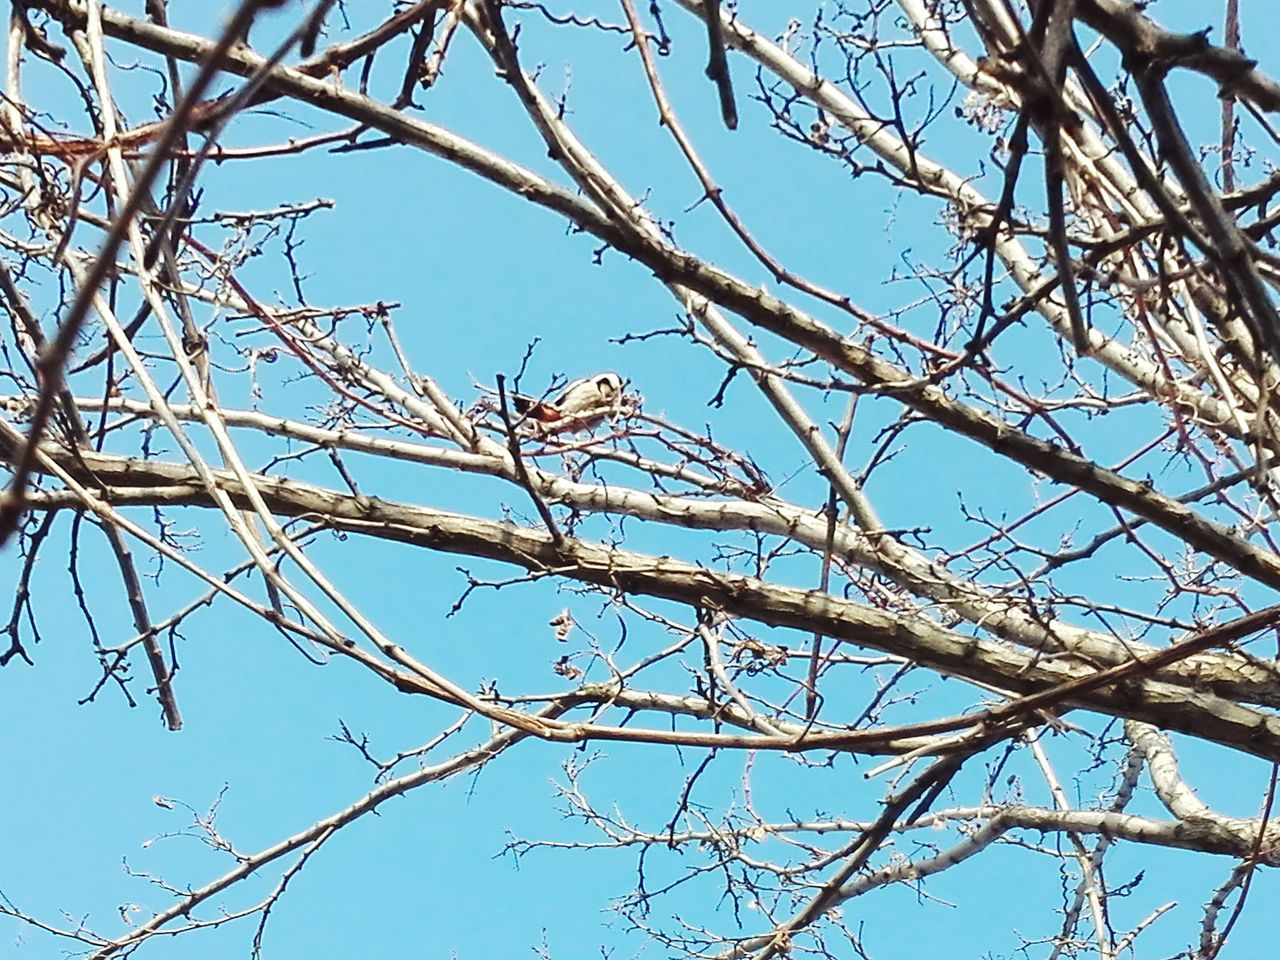 Low Angle View Tree Blue Branch Nature Sky No People Close-up Outdoors Beauty In Nature Bare Tree Woodpecker In Tree Showcase: January Edited By @wolfzuachis Showcase: 2017 @WOLFZUACHiV Veronicaionita Eyeem Market Huaweiphotography Wolfzuachiv On Market Woodpecker Bird Woodpecker Bird